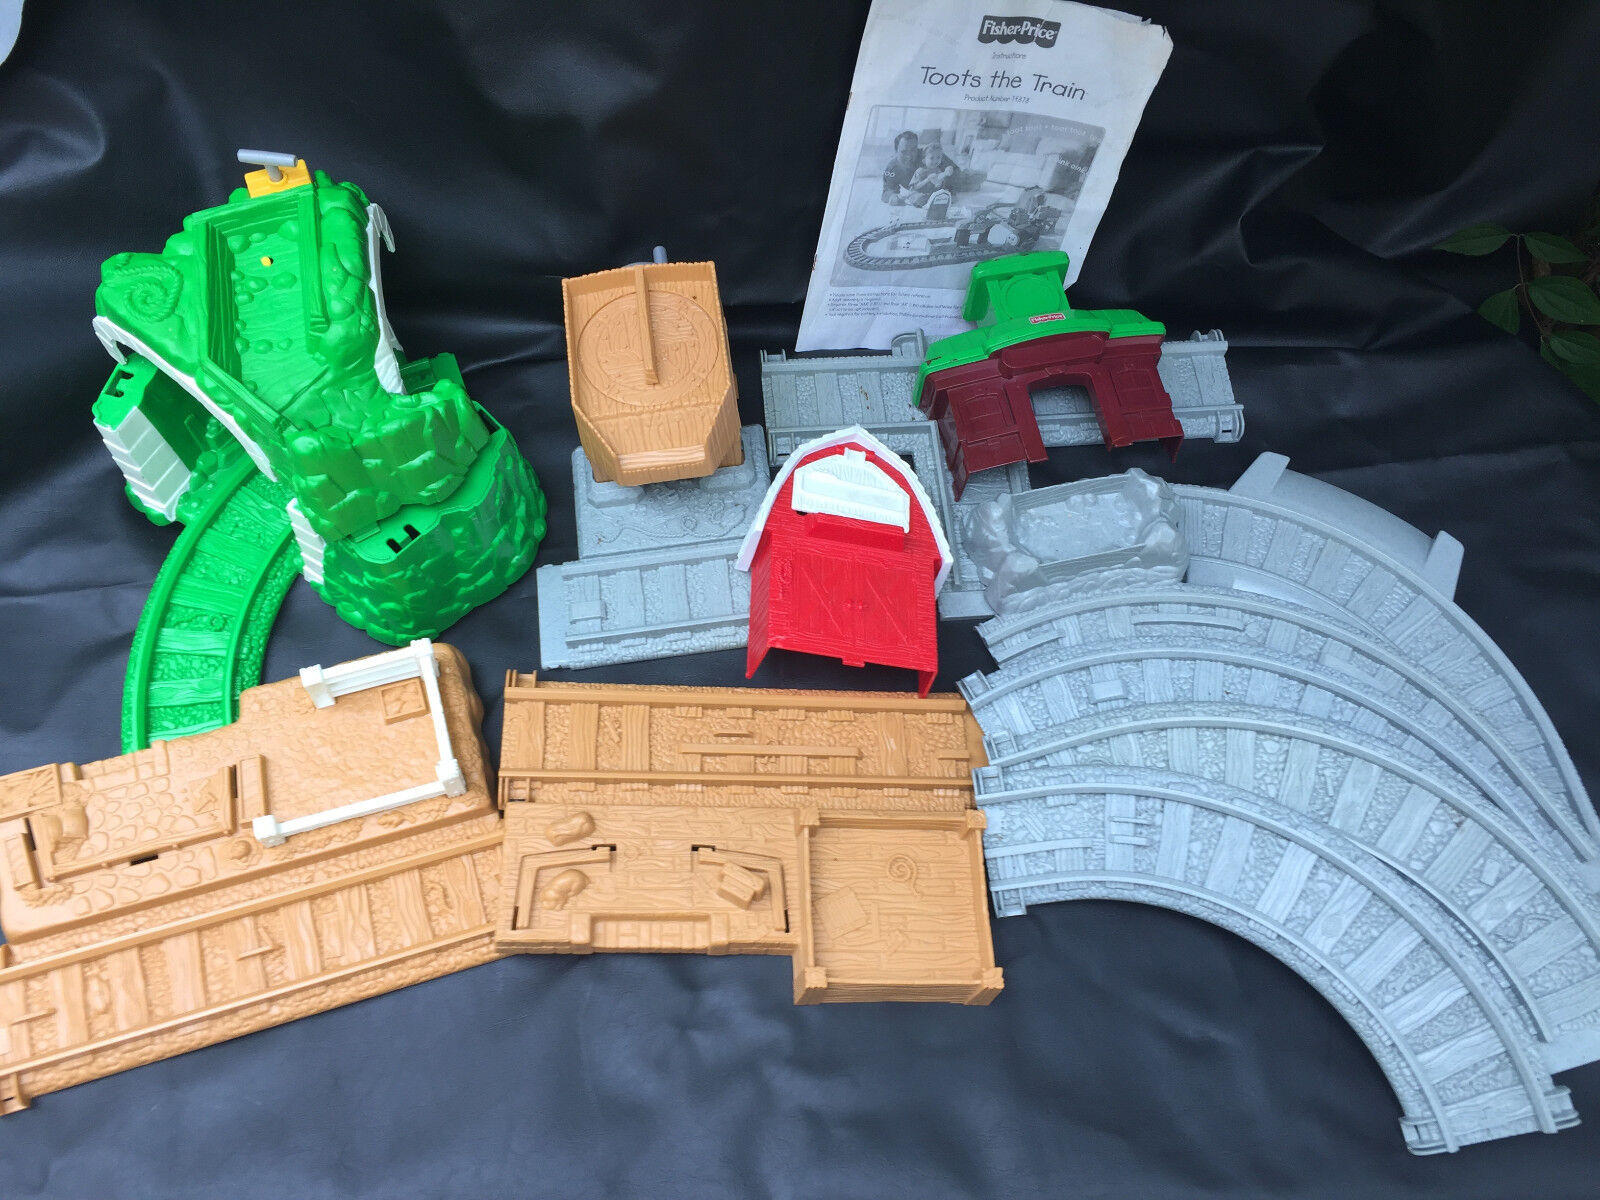 Toots the Train Fisher-Price 74878 with instructions Mattel 1999 not complete